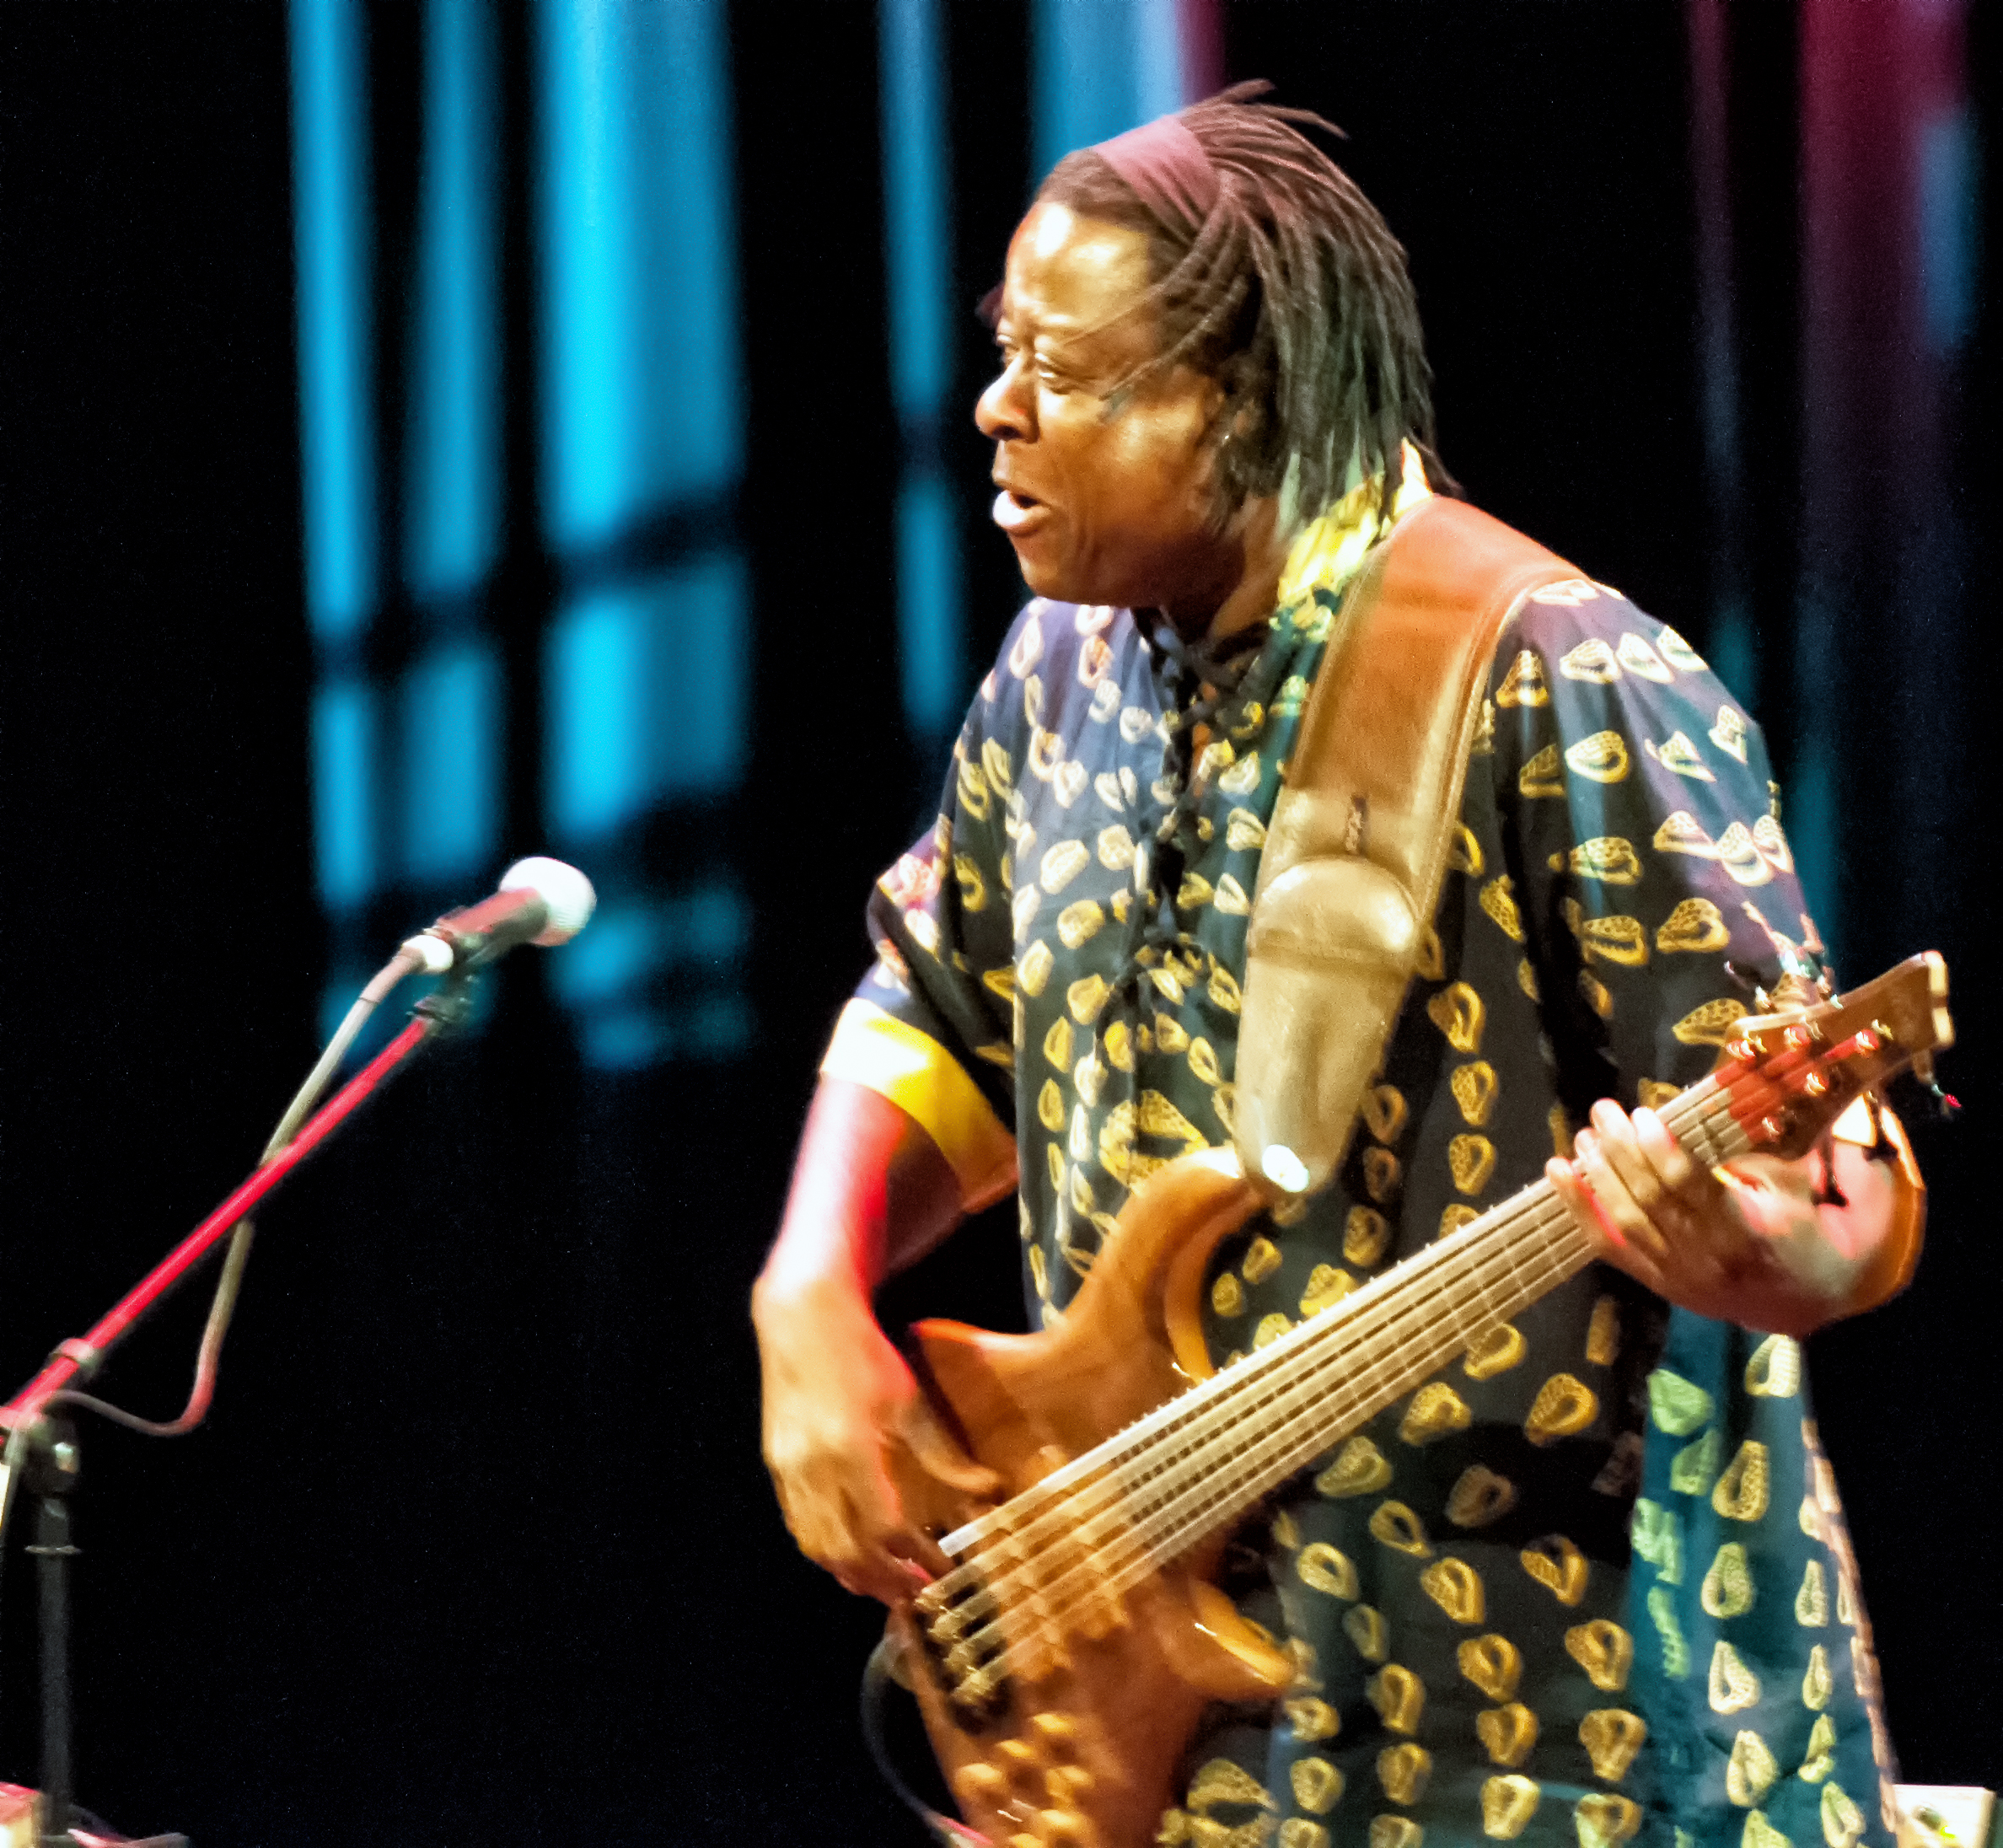 Childo thomas with omar sosa and the afri-lectric experience at the tempe arts center